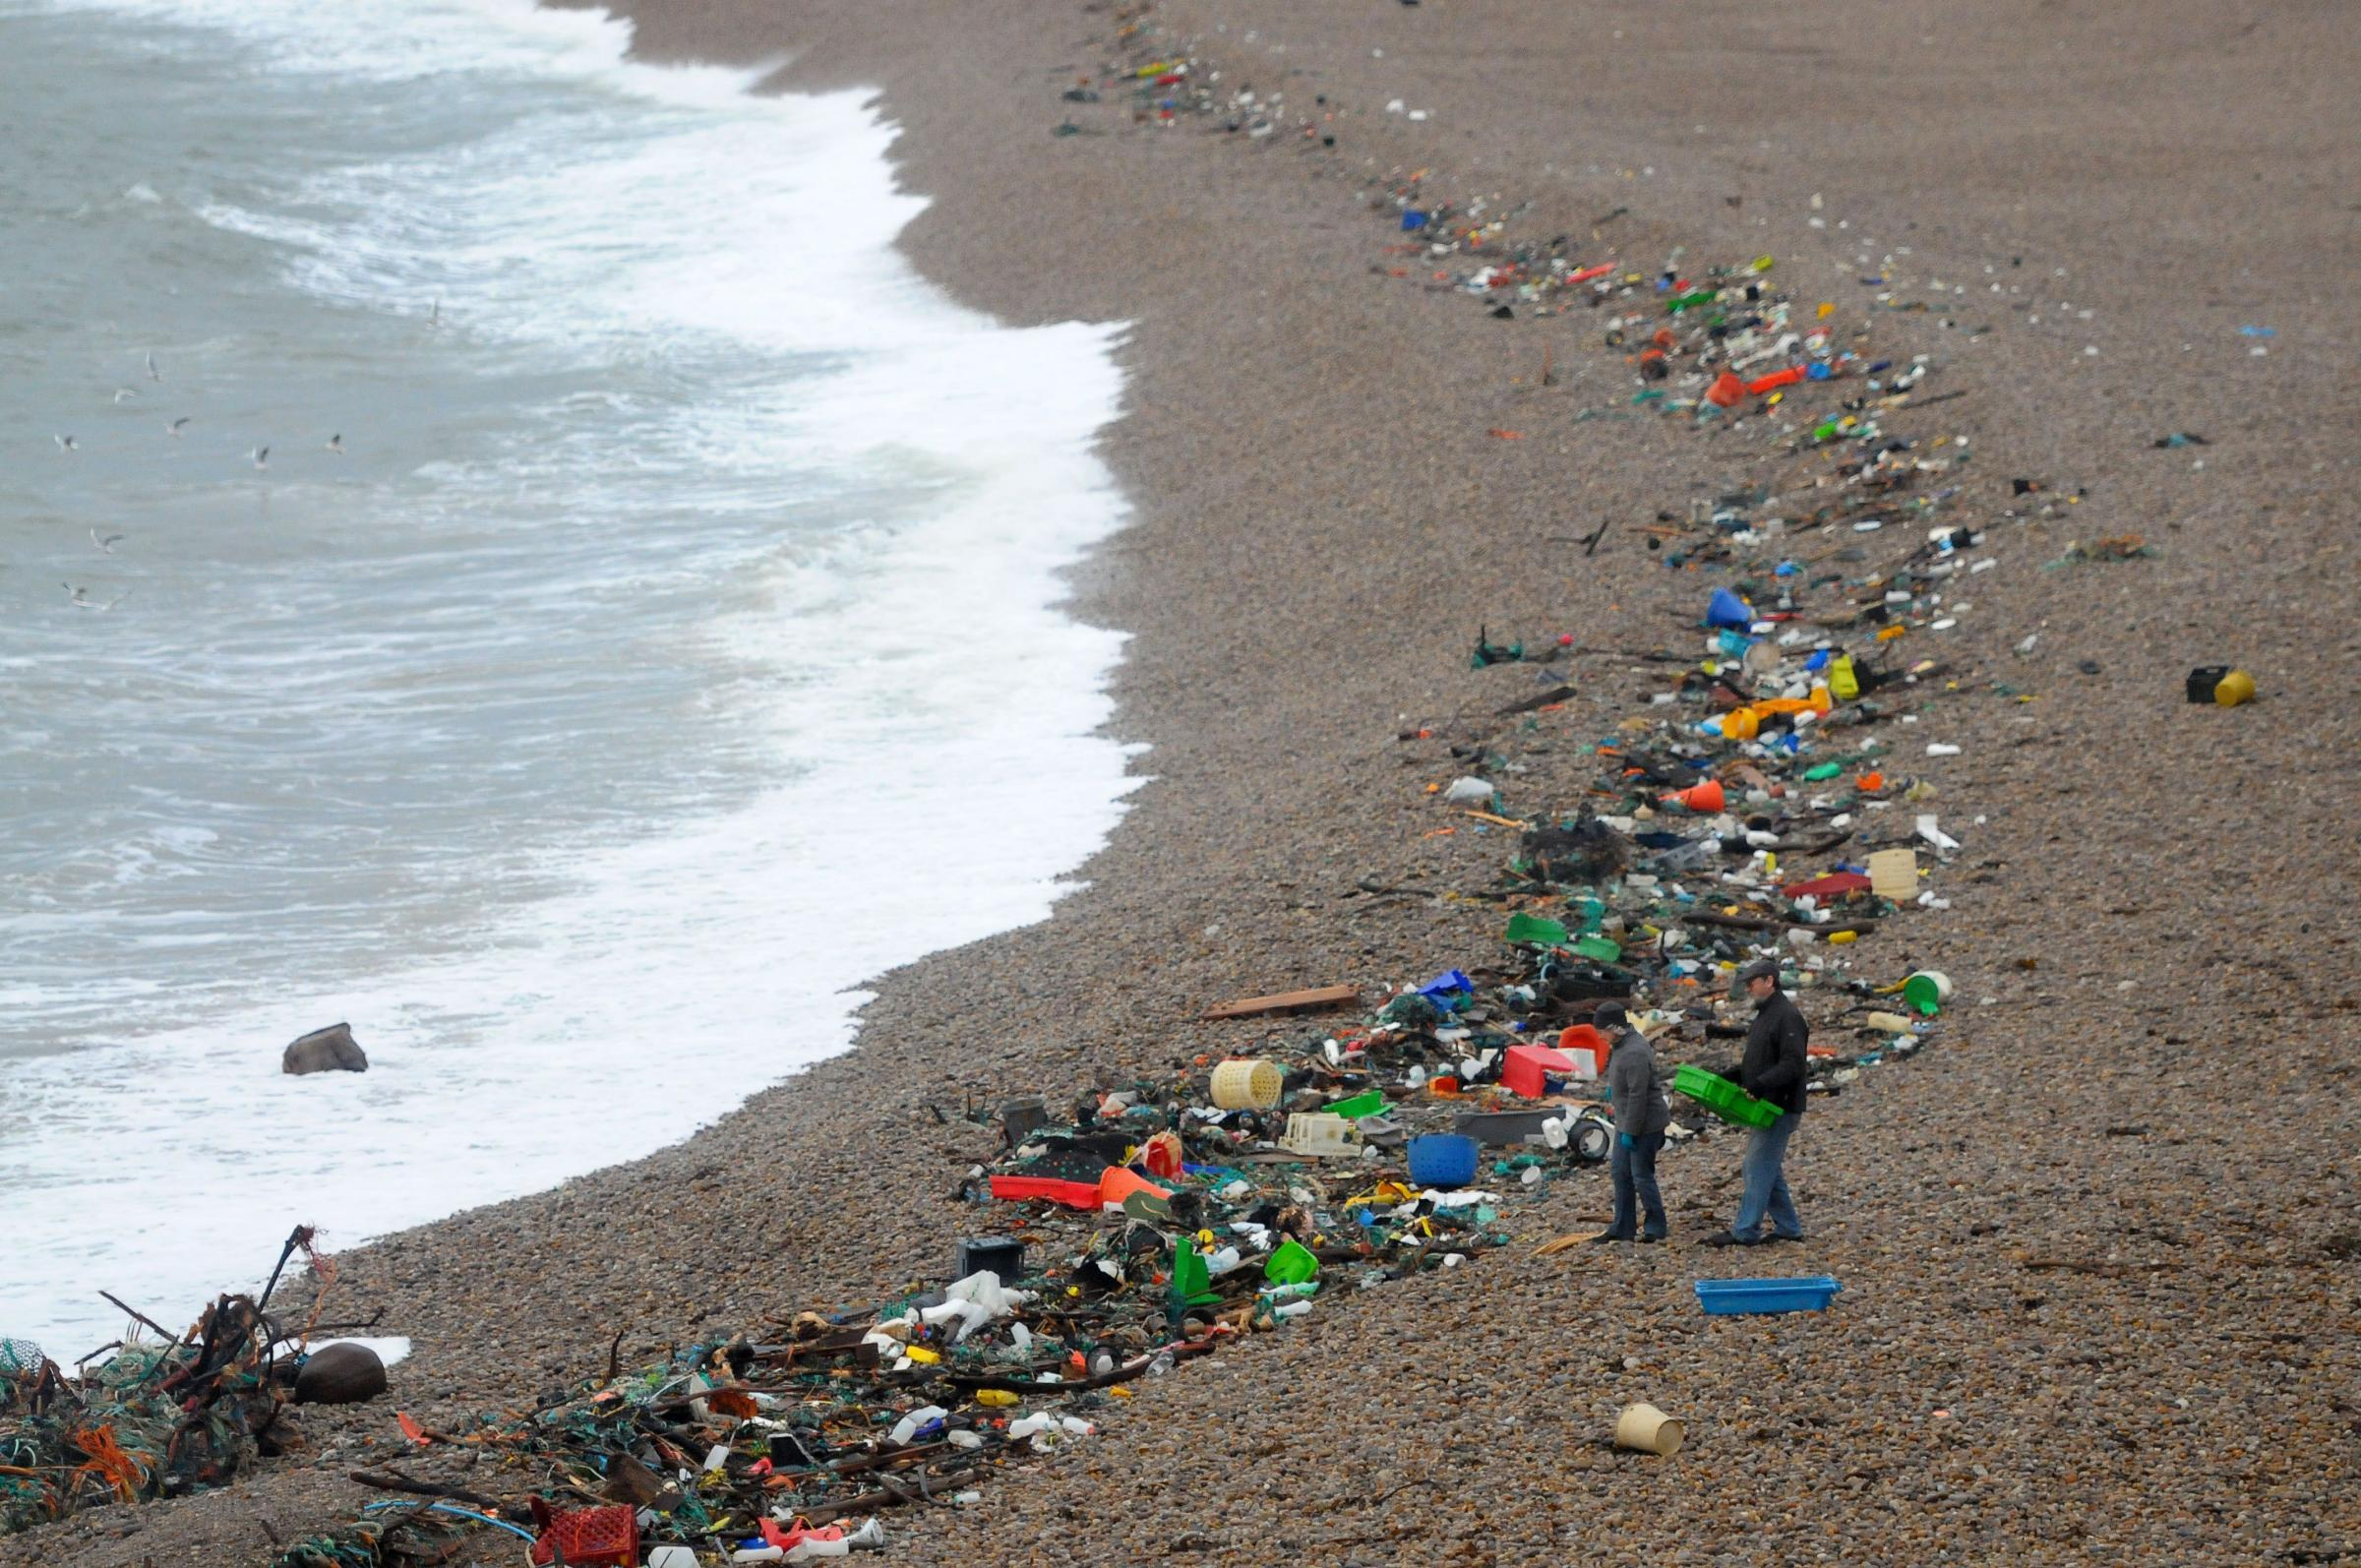 Tonnes of rubbish washed up on Chesil Beach